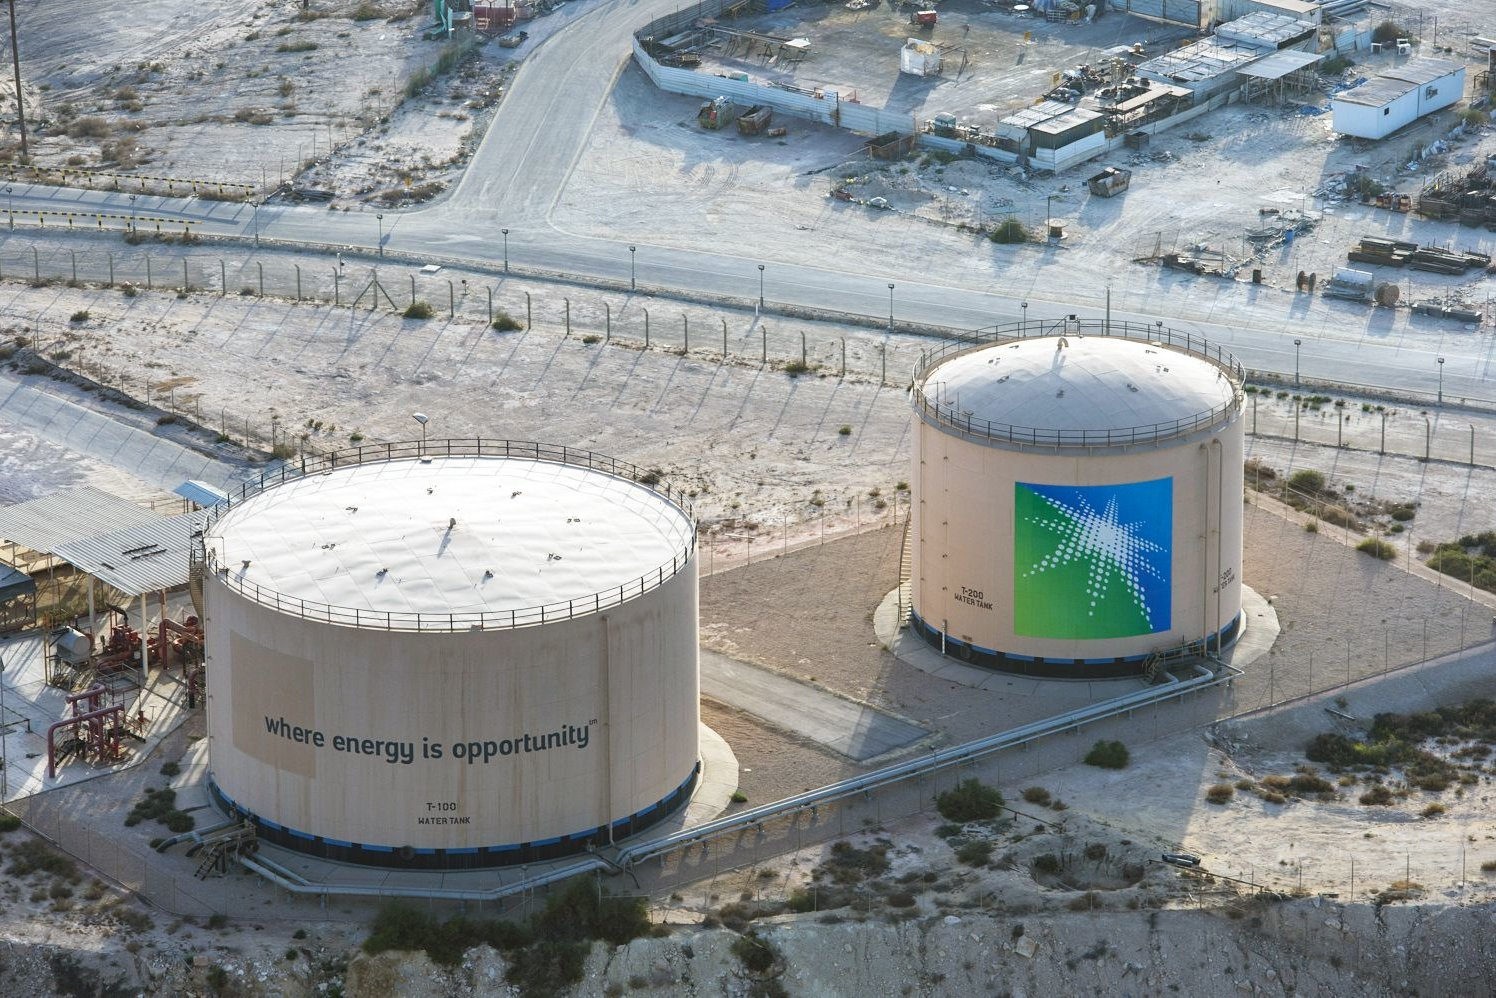 UAE-based fabrication company Lamprell inks new contract with Saudi Aramco